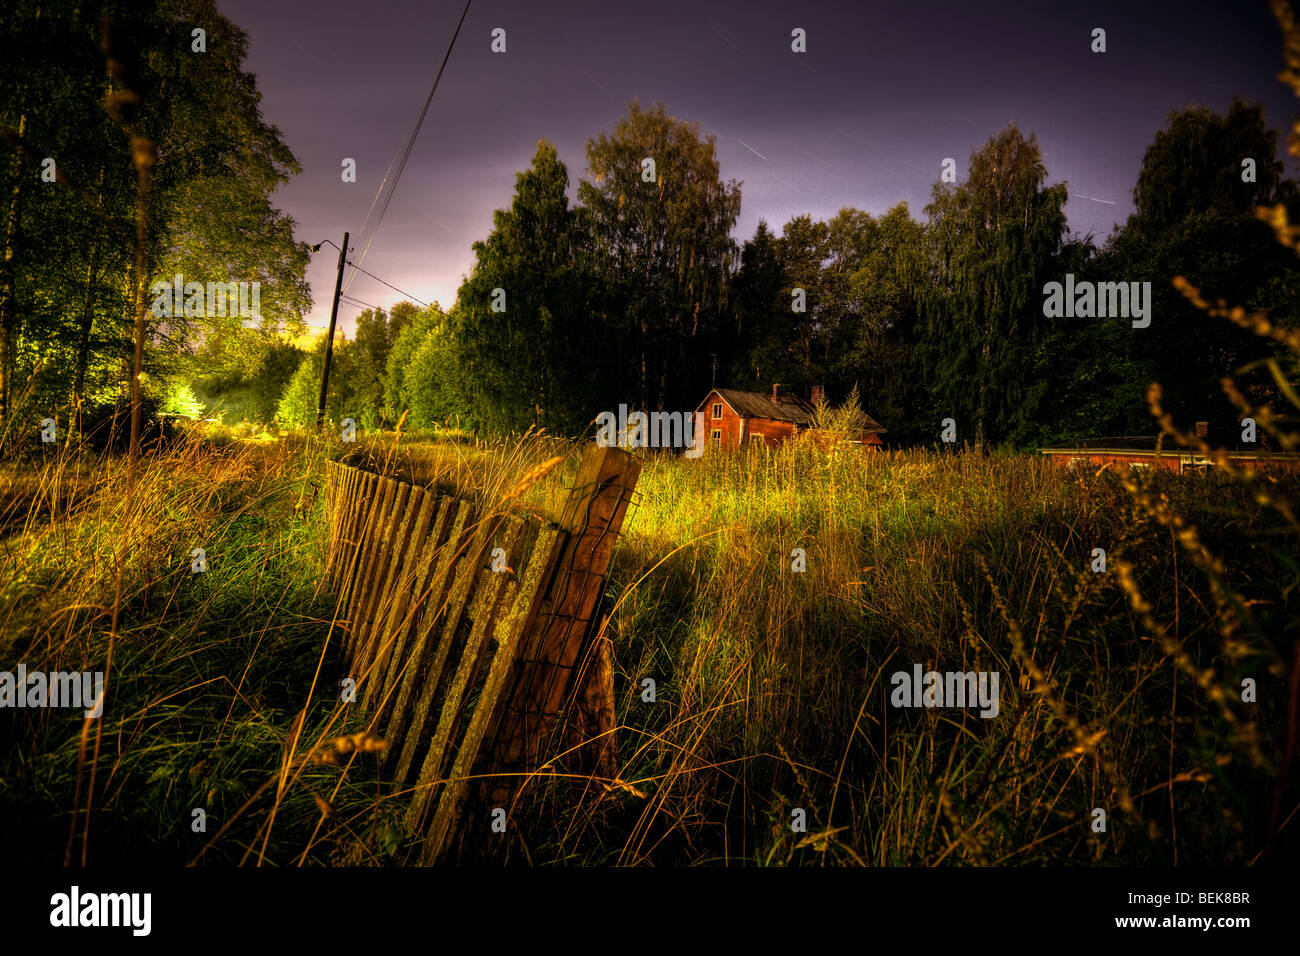 Old cabin landscape with star trails - Stock Image